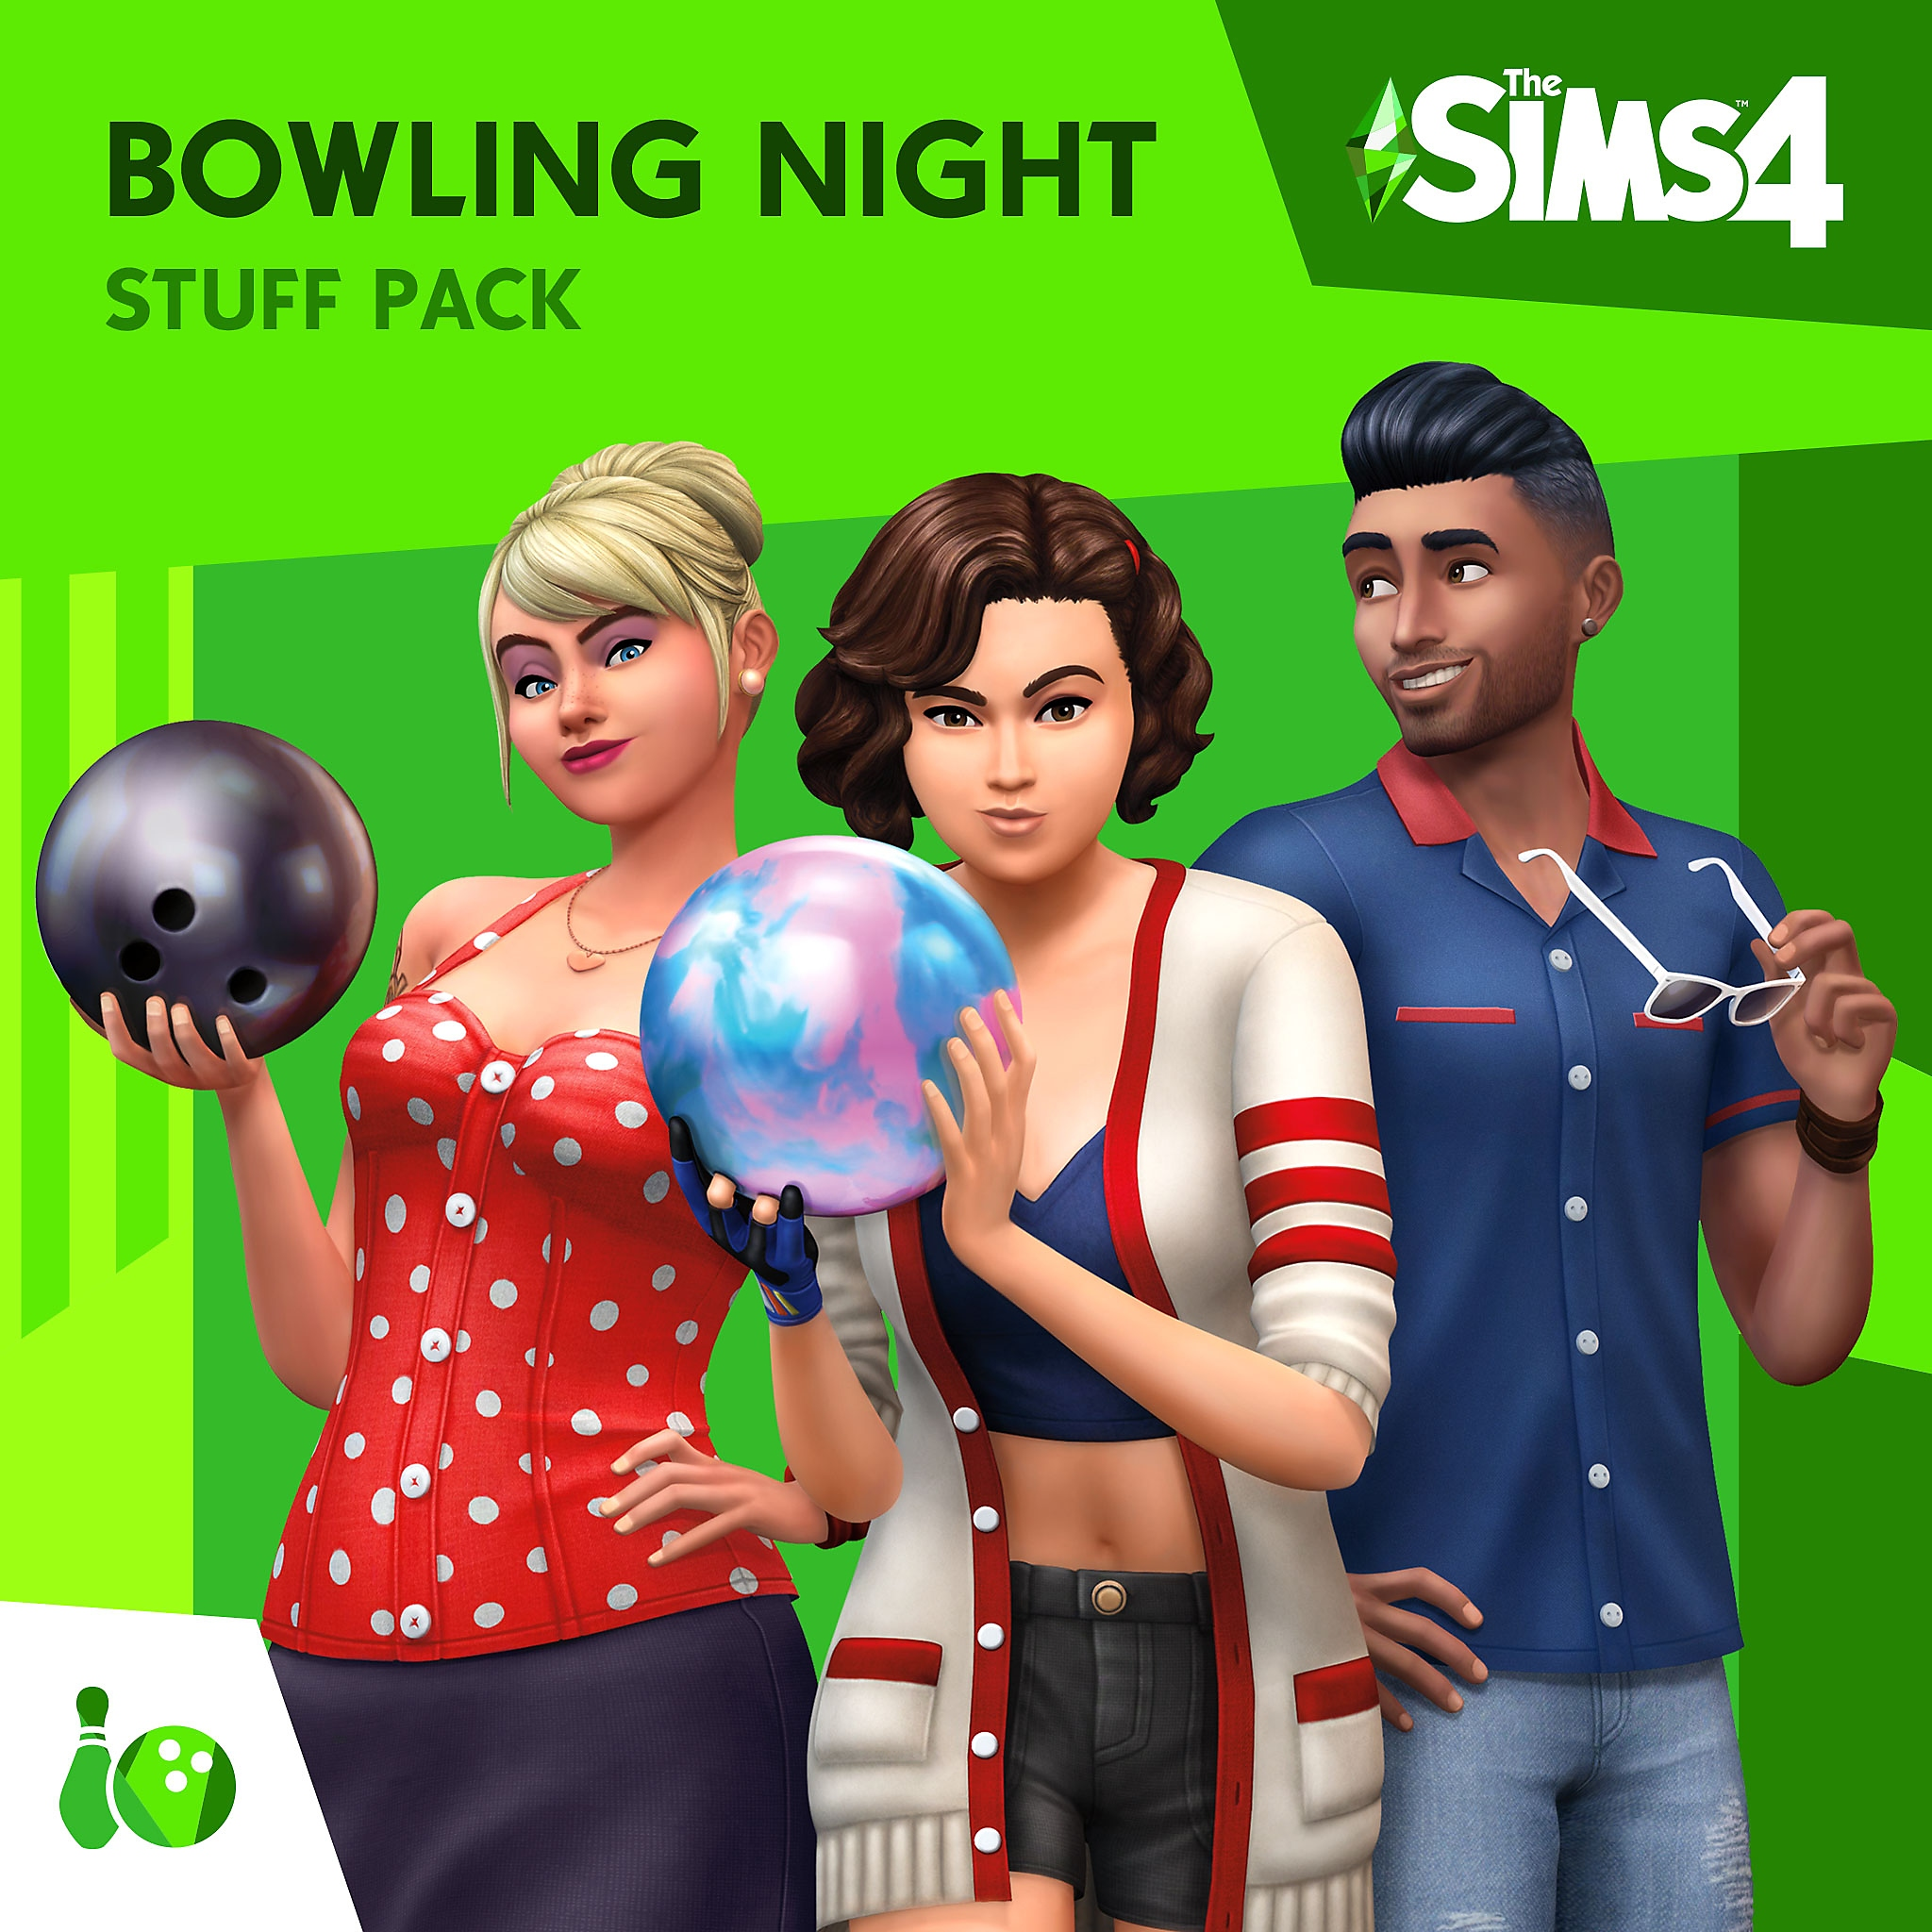 Bowling Night Stuff Pack